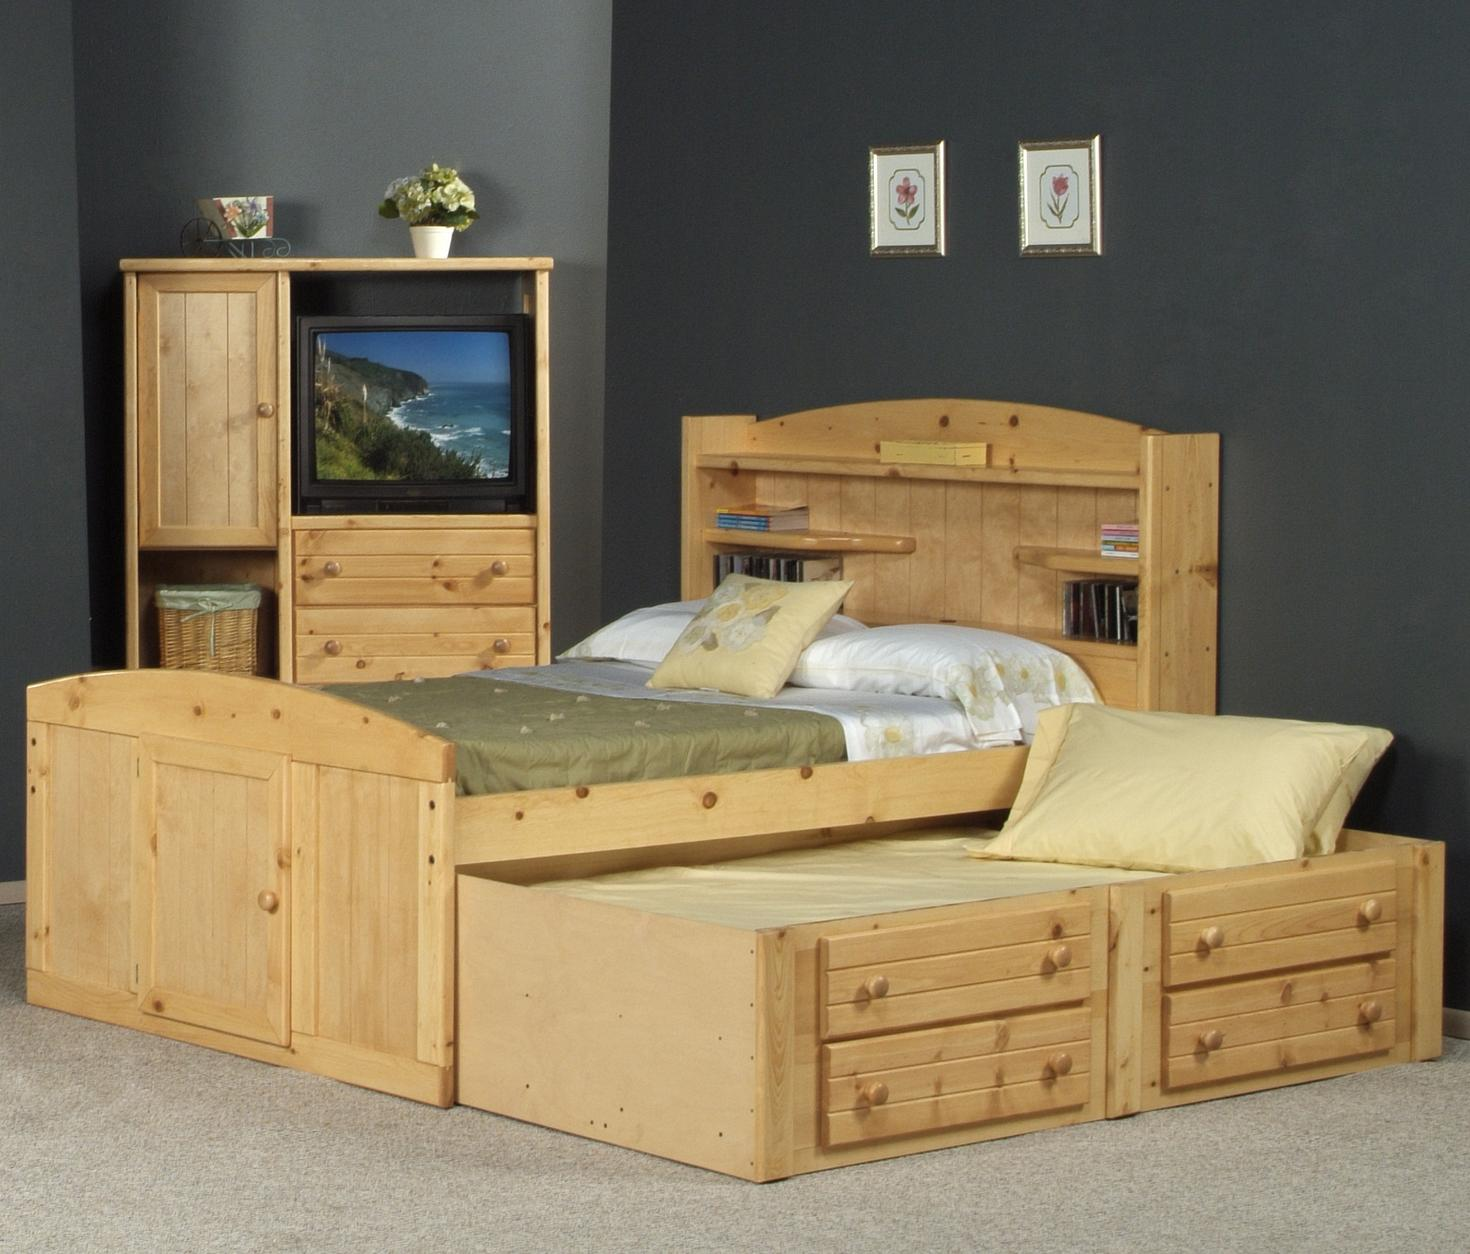 Bayview Full Palomino Bed with Trundle by Trendwood at Wilson's Furniture